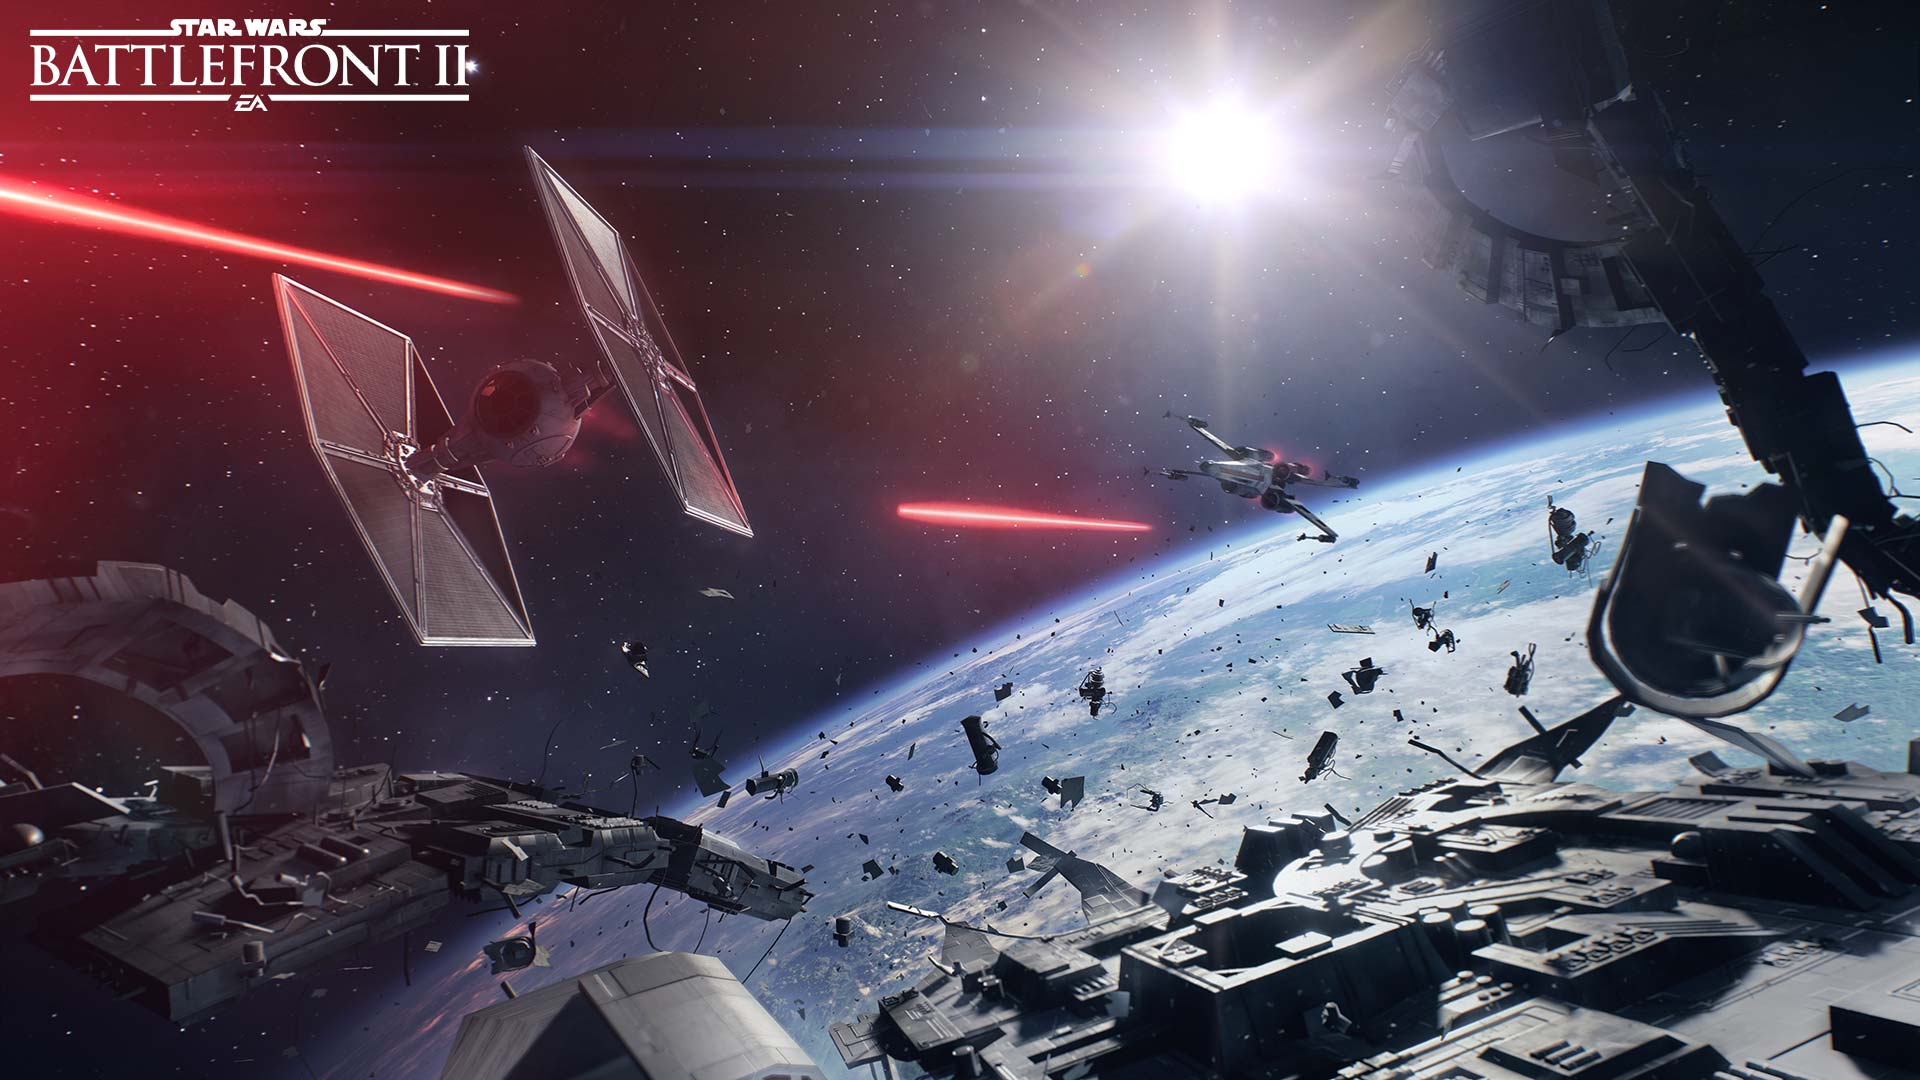 Battlefront 2: Ship Battles.